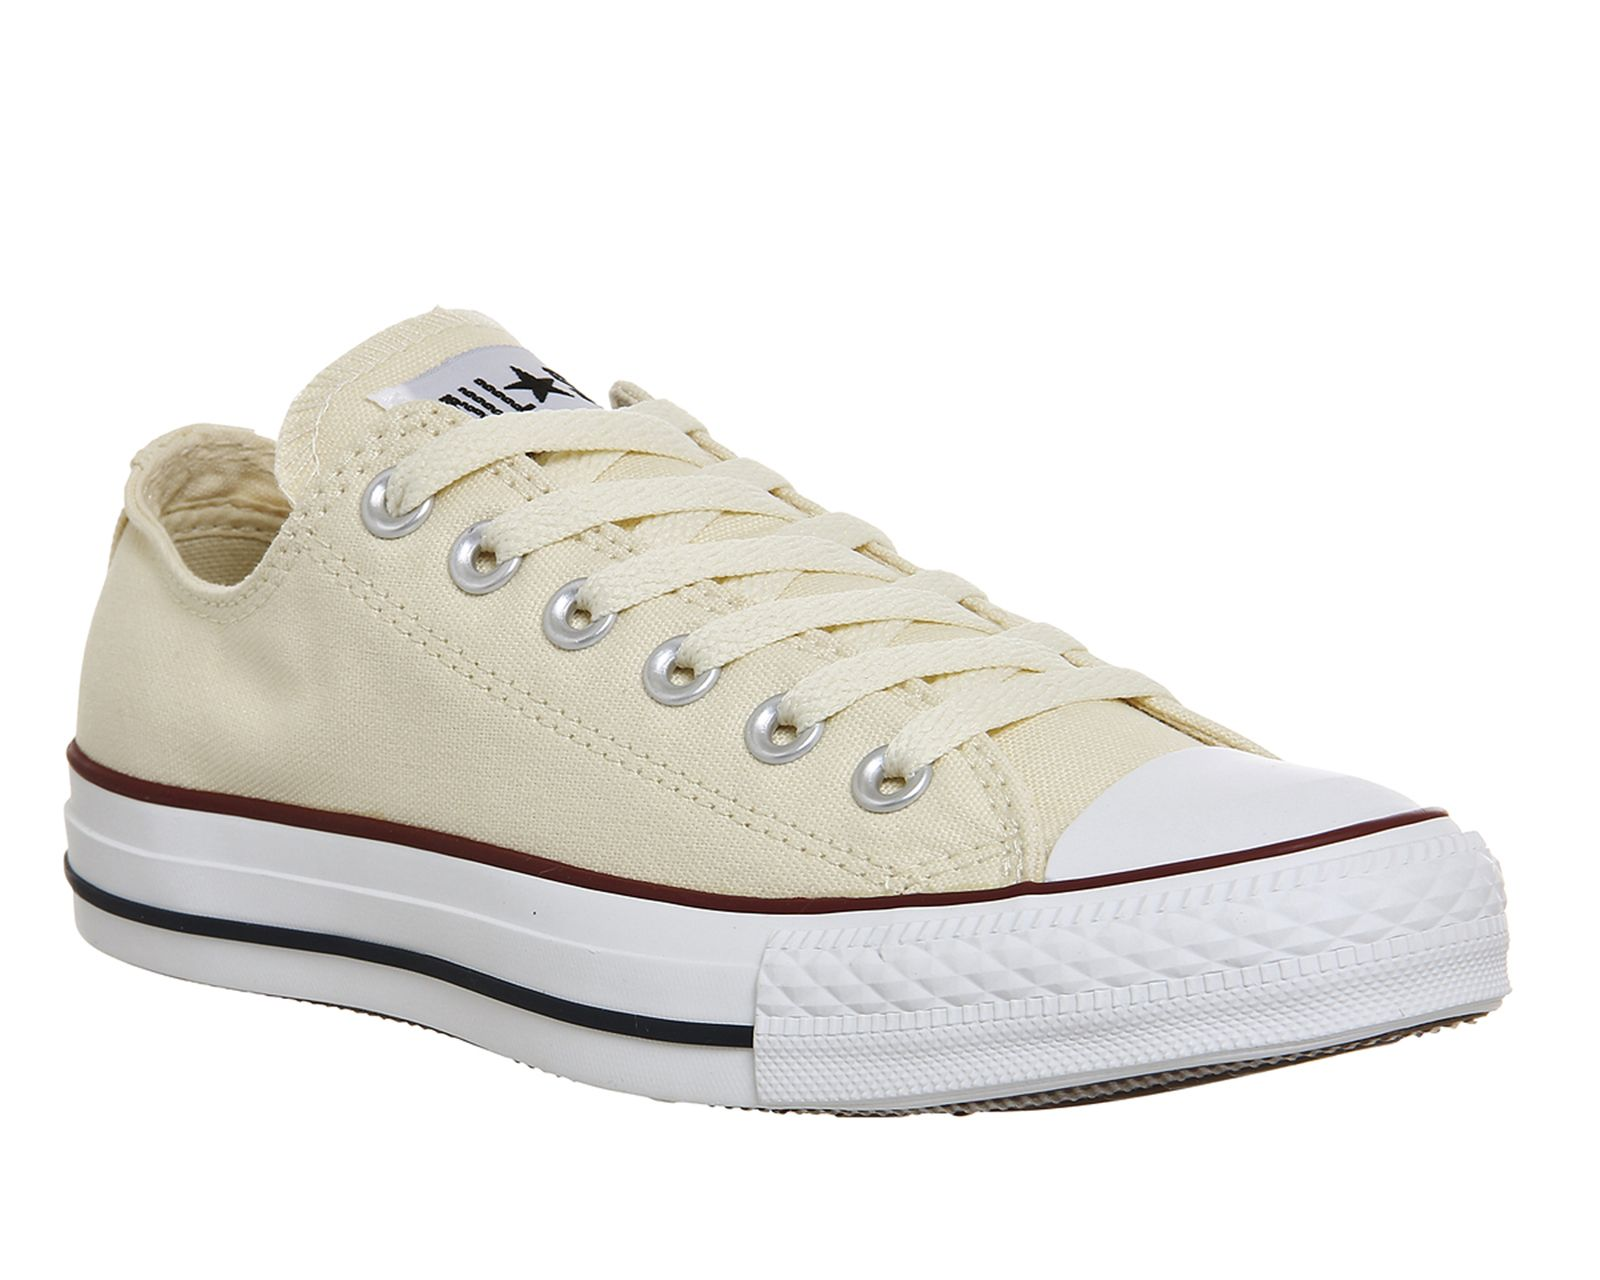 All Star Low | Converse all star, Converse, Chuck taylor ...